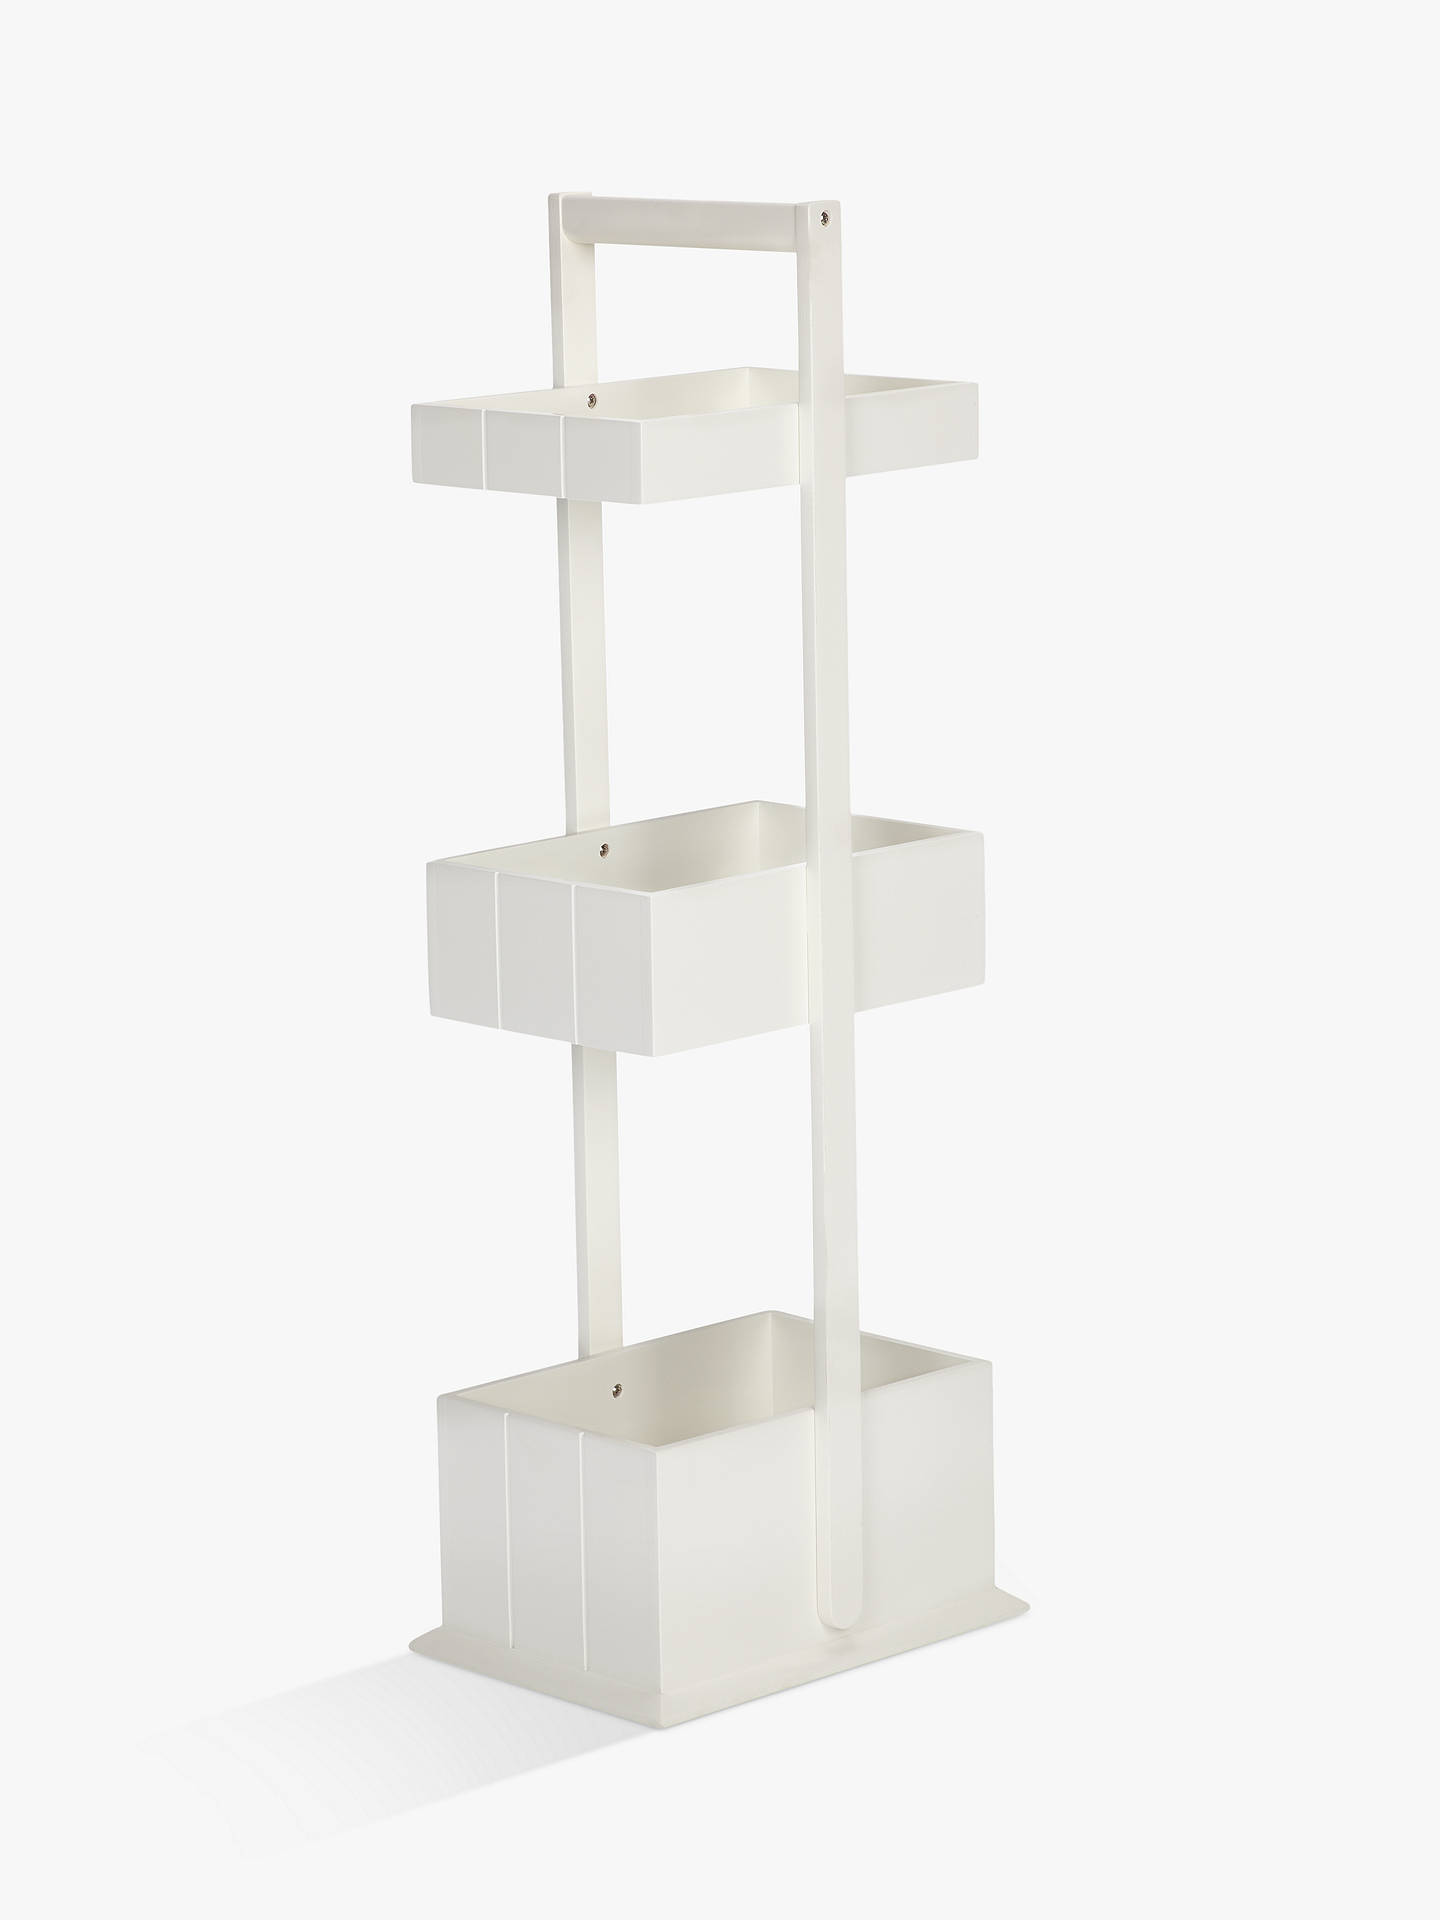 BuyJohn Lewis & Partners St Ives 3 Tier Bathroom Storage Caddy Online at johnlewis.com